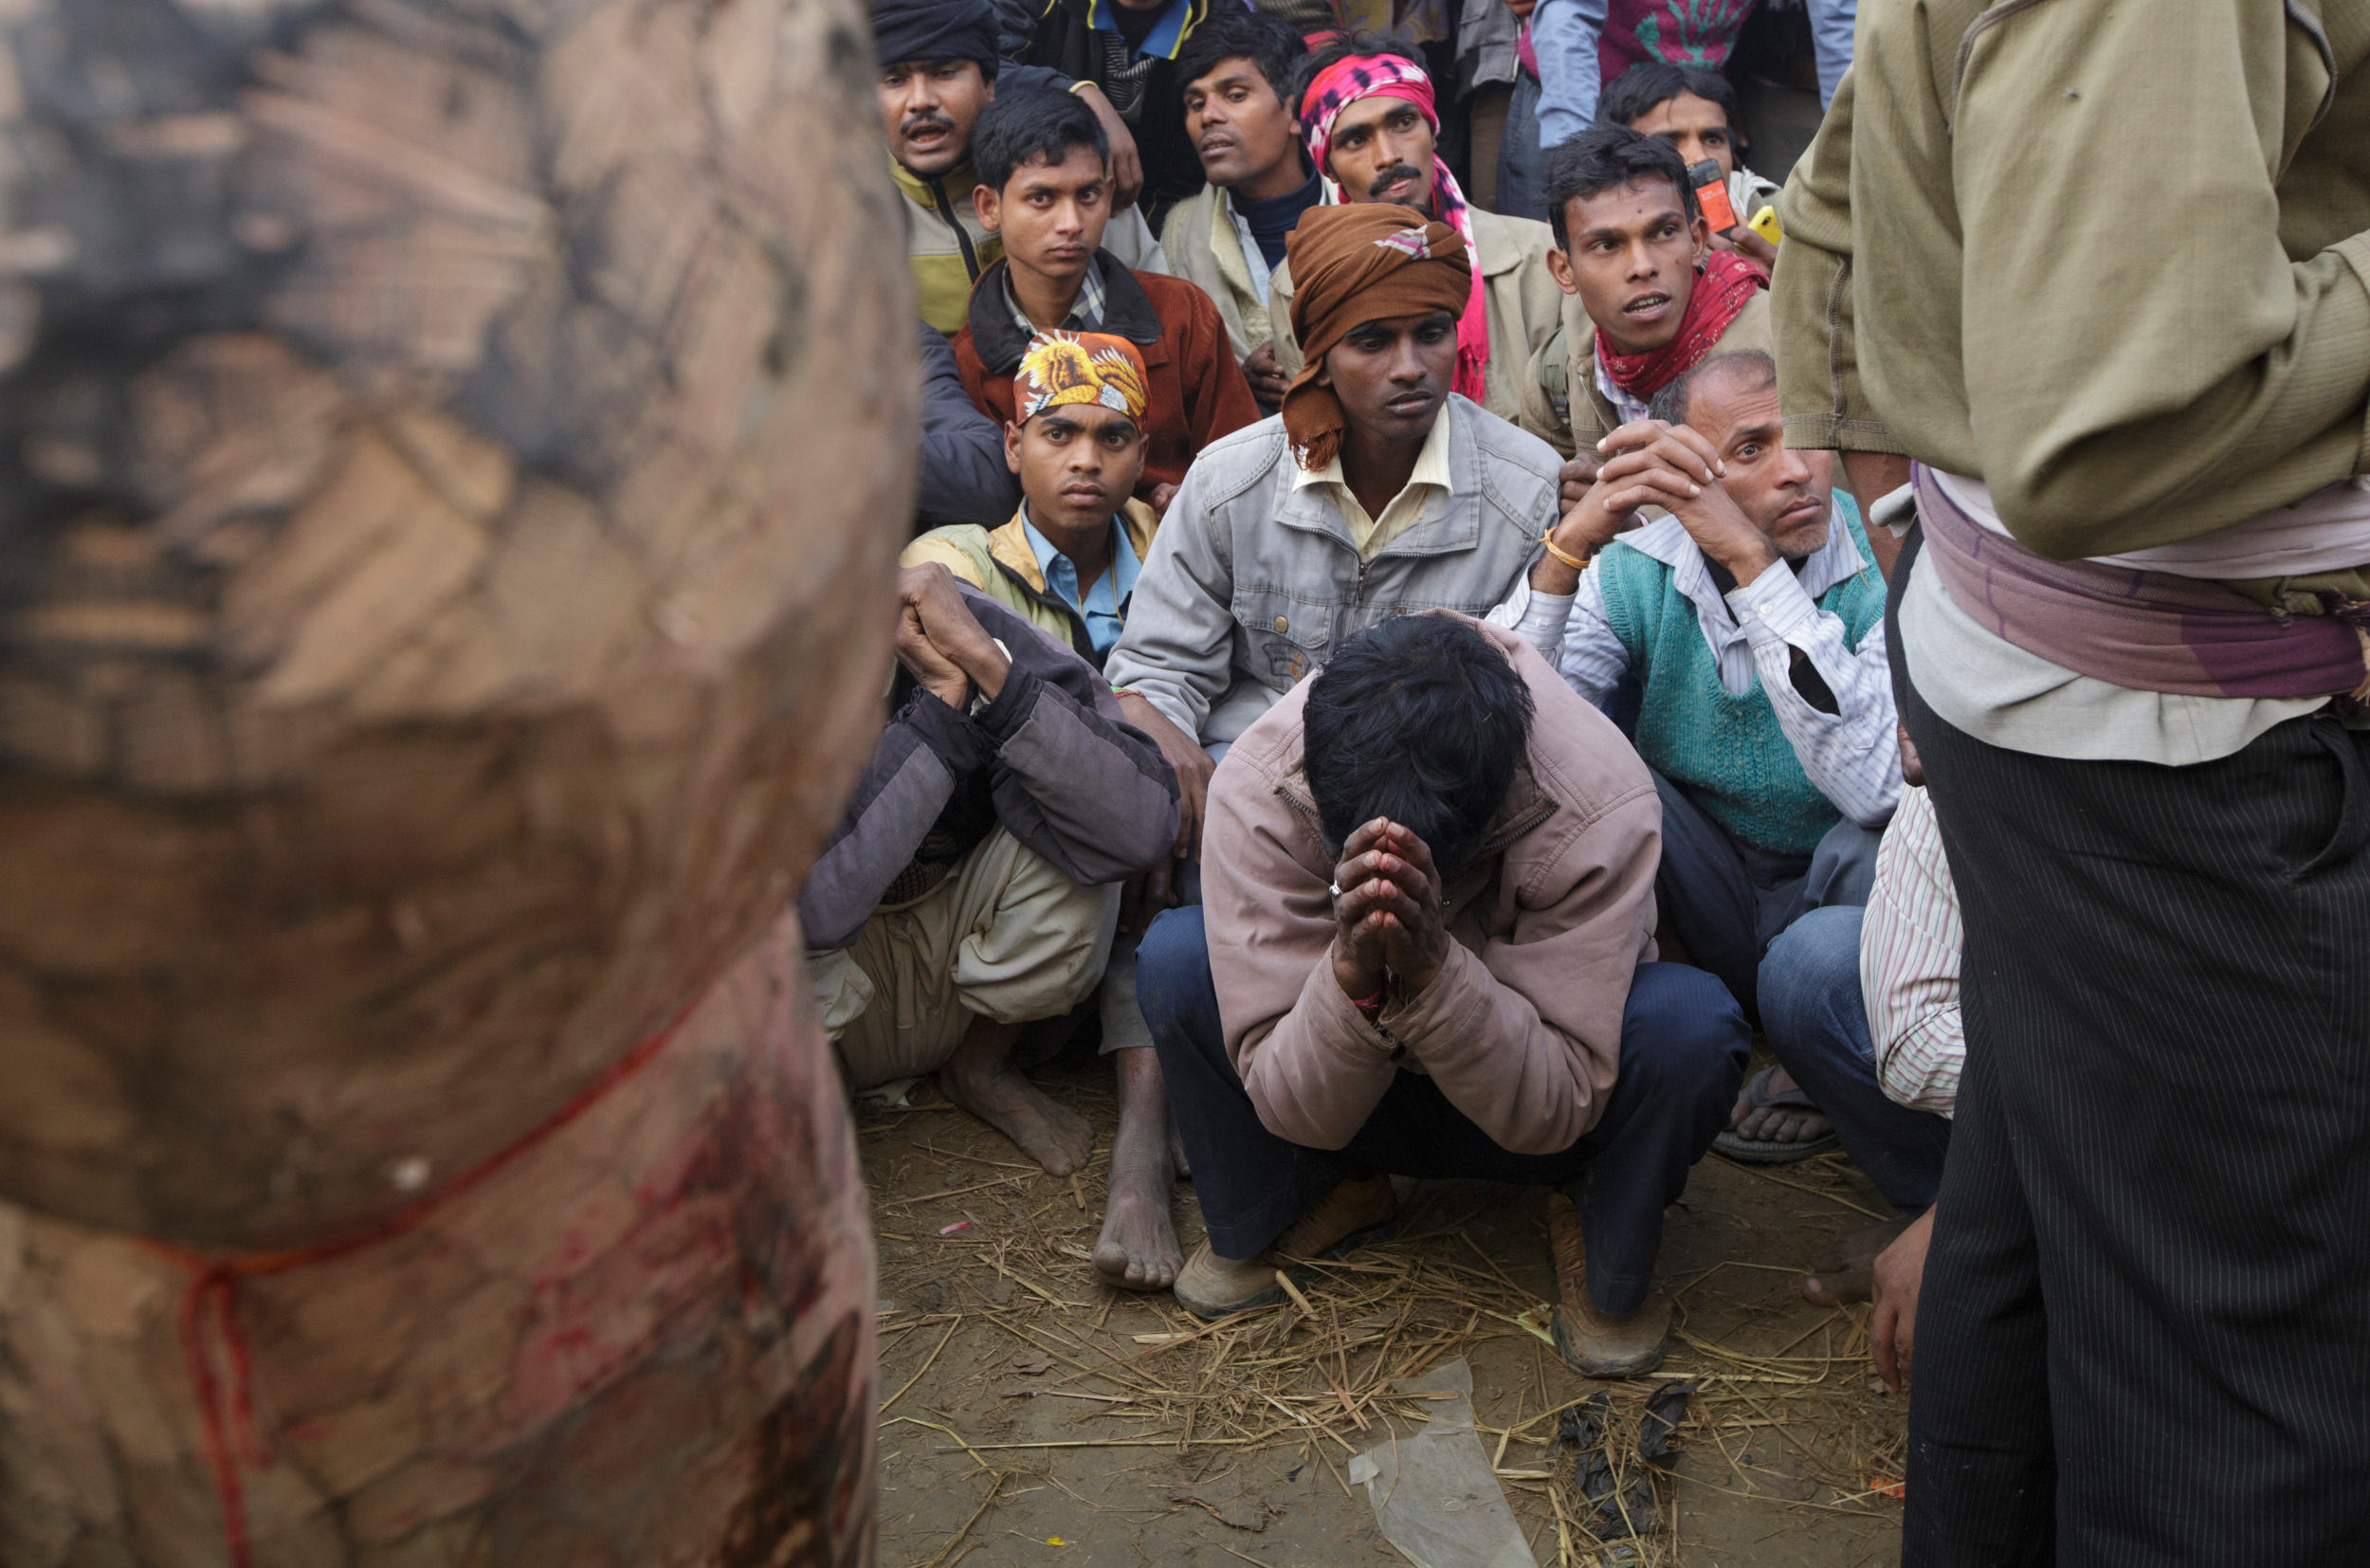 Praying at Gadhimai